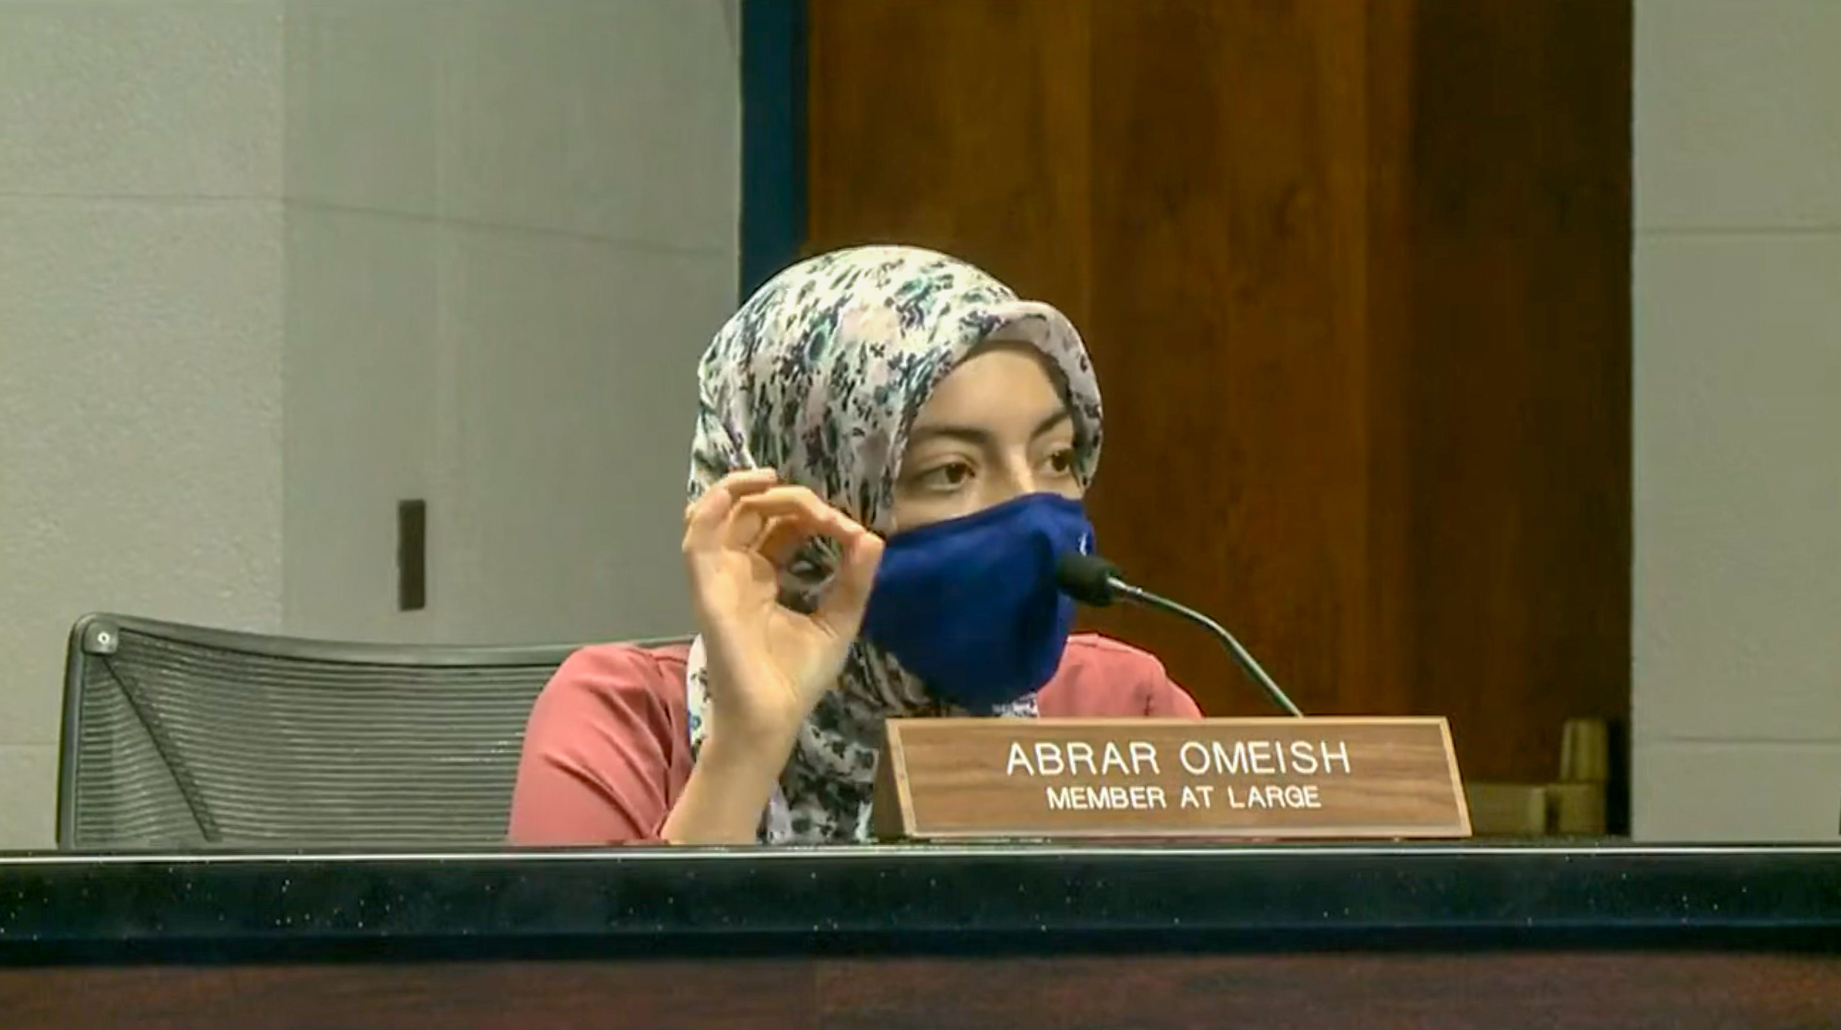 """Abrar Omeish derailed another school board meeting last night, as the embattled at-large member detailed her reasons for voting against a resolution to honor the victims of the 9/11 terrorist attacks. """"Why can we not also explicitly recognize the extensive and unwarranted structural discrimination and ethnic and religious profiling following 9/11 that tens of thousands of FCPS students experience on a daily basis,"""" Omeish asked."""